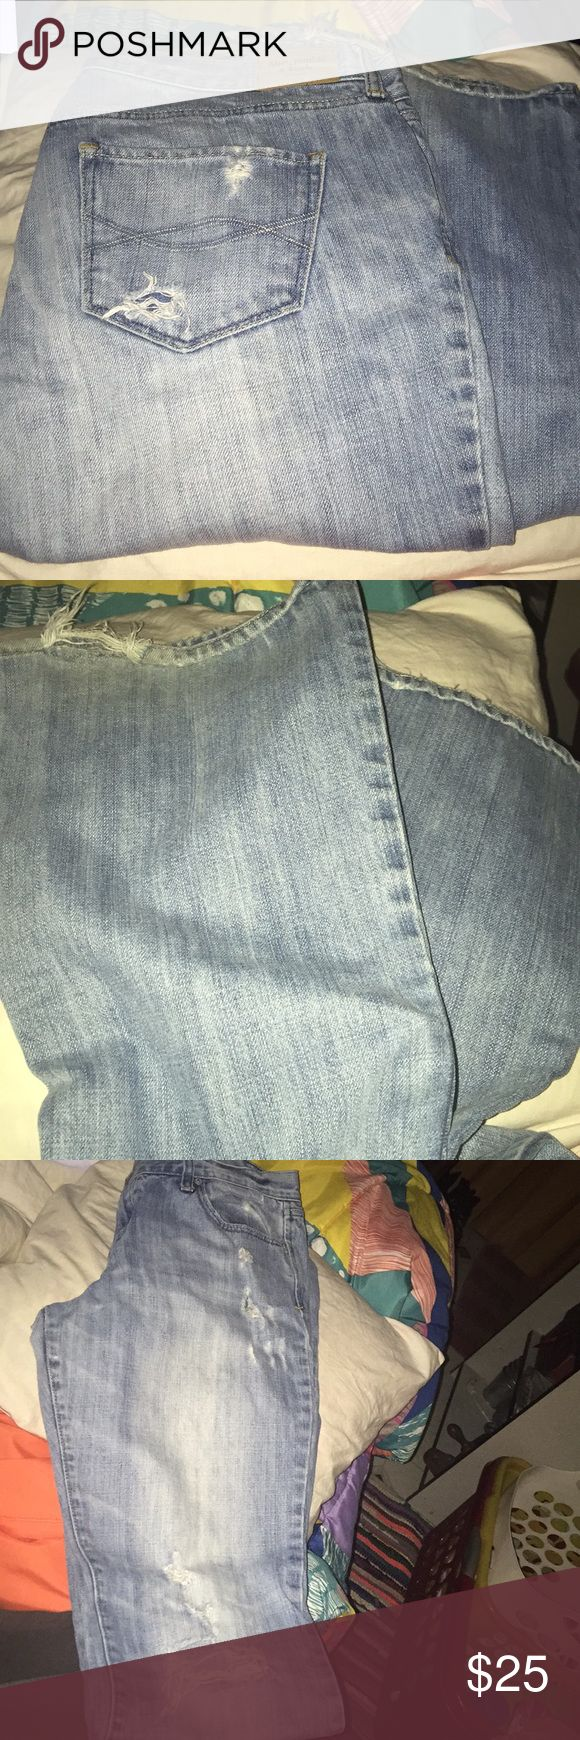 Women's Distressed Abercrombie Jeans Size 10 Women's Abercrombie and Fitch distressed boot cut jeans size 10. In great condition. 33 inches in length. From a pet free smoke free home. Abercrombie & Fitch Jeans Boot Cut